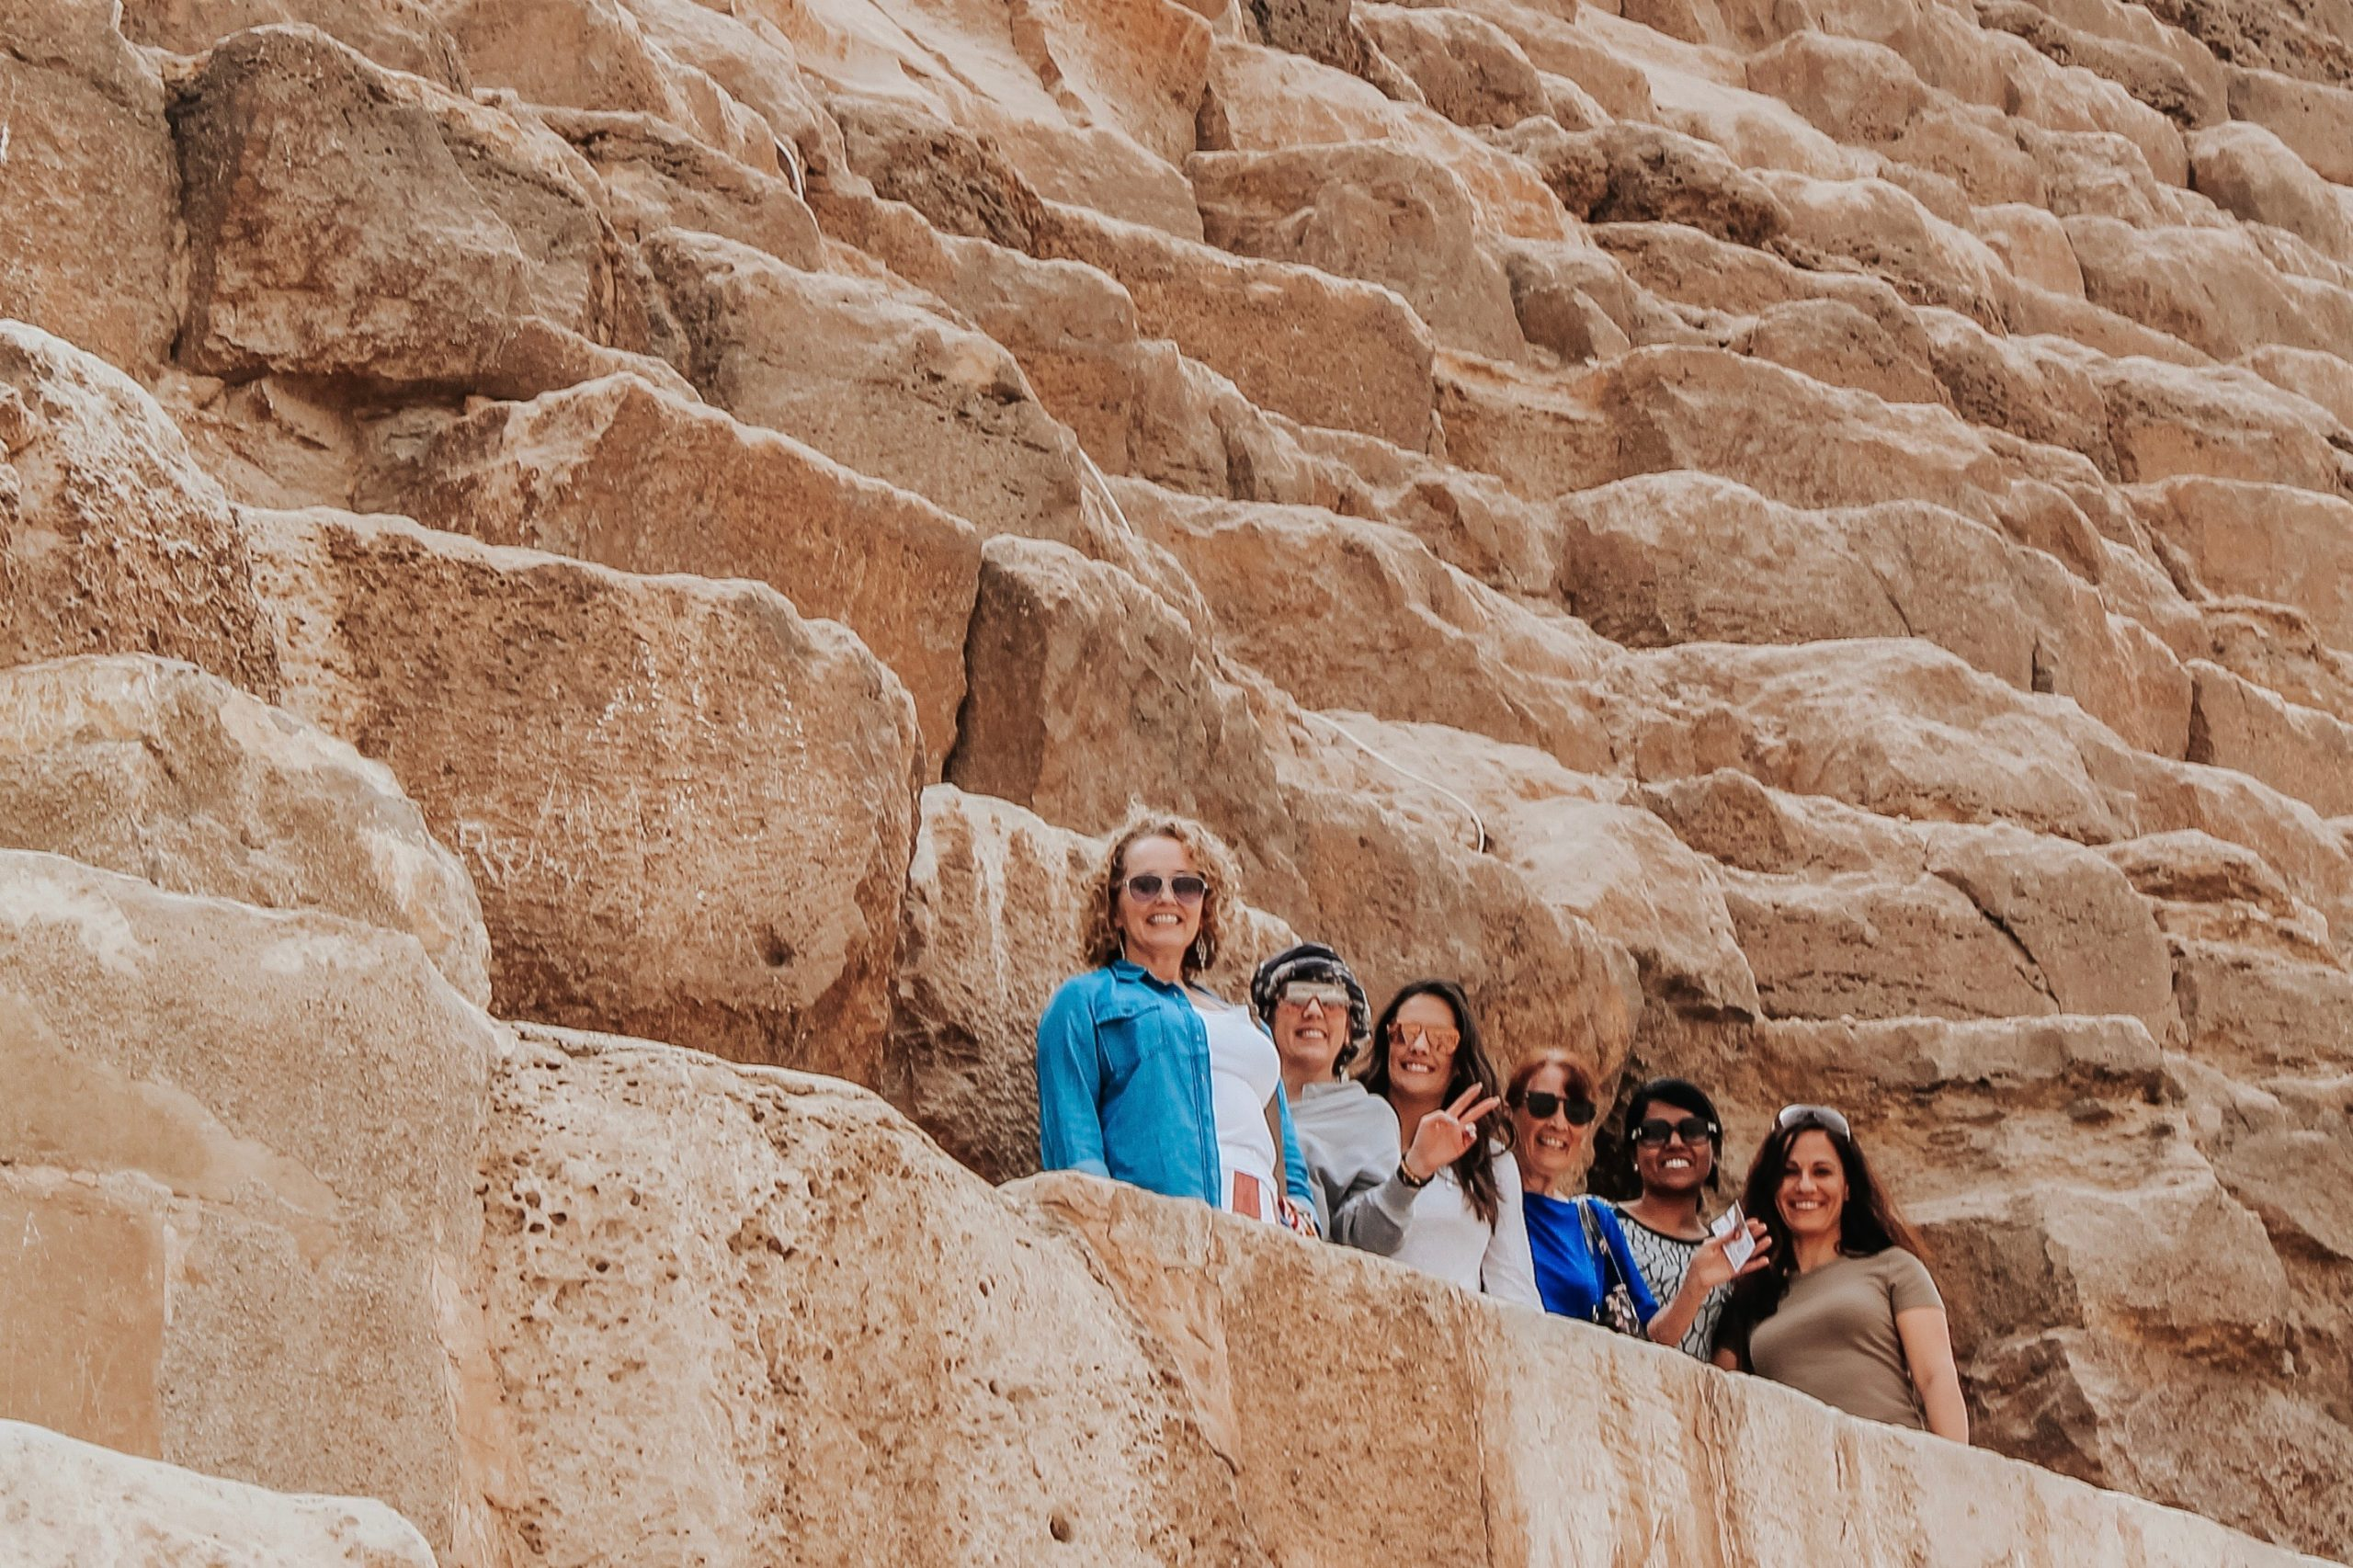 Egypt Pyramids Women Solo Tour